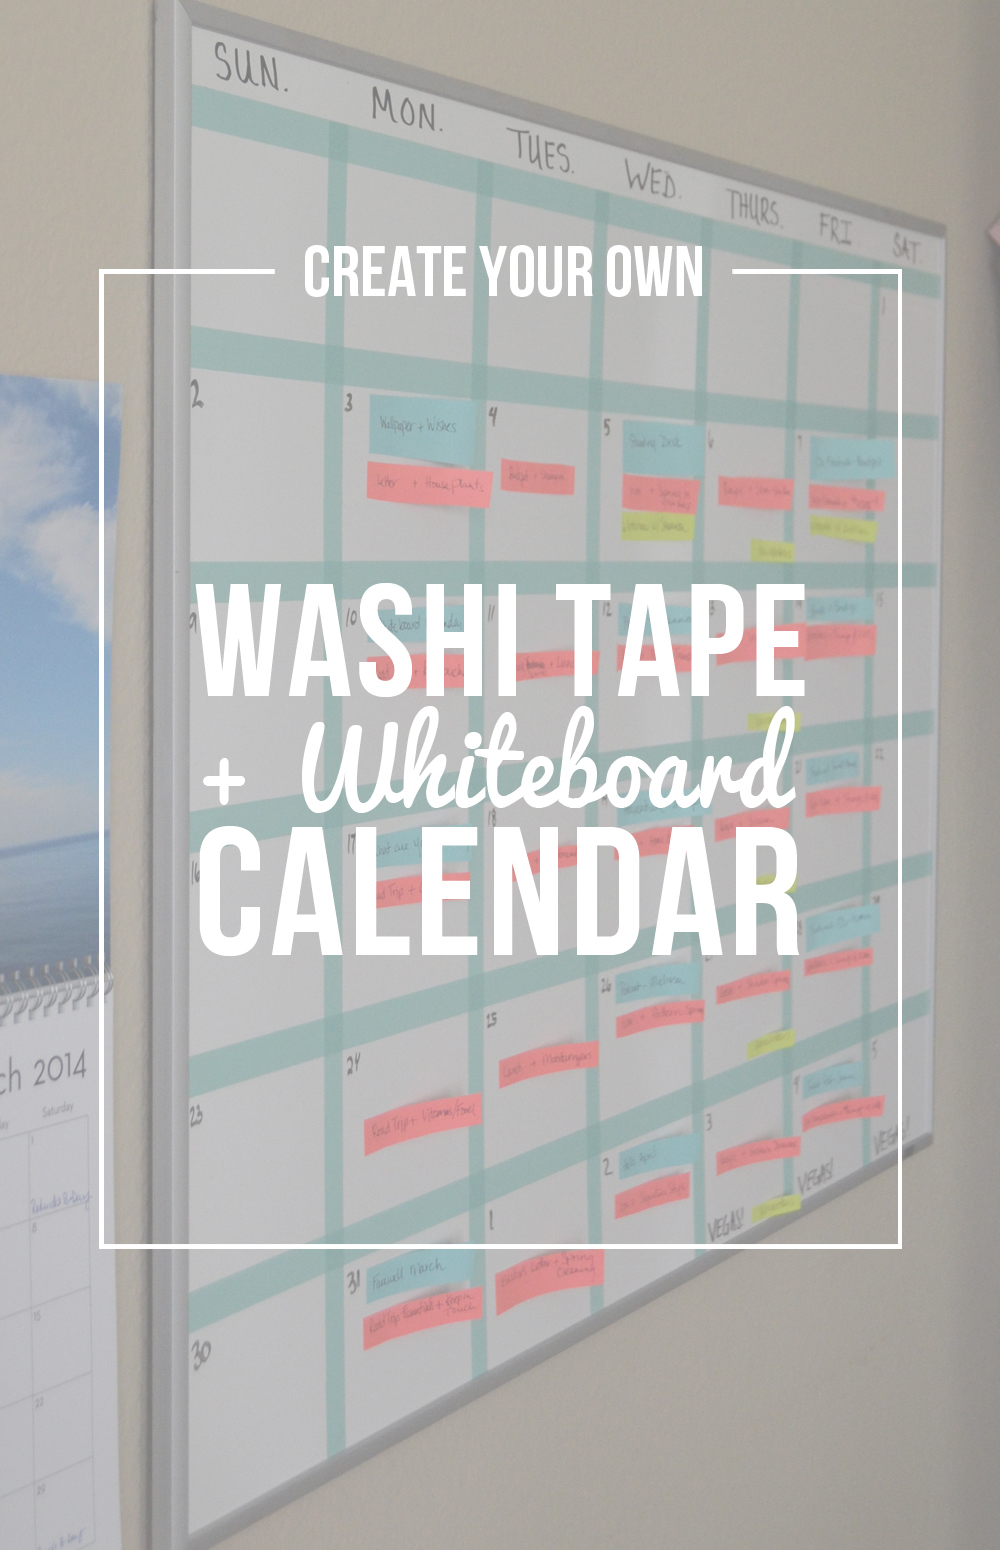 Calendar Whiteboard Ideas : Create your own washi tape whiteboard calendar